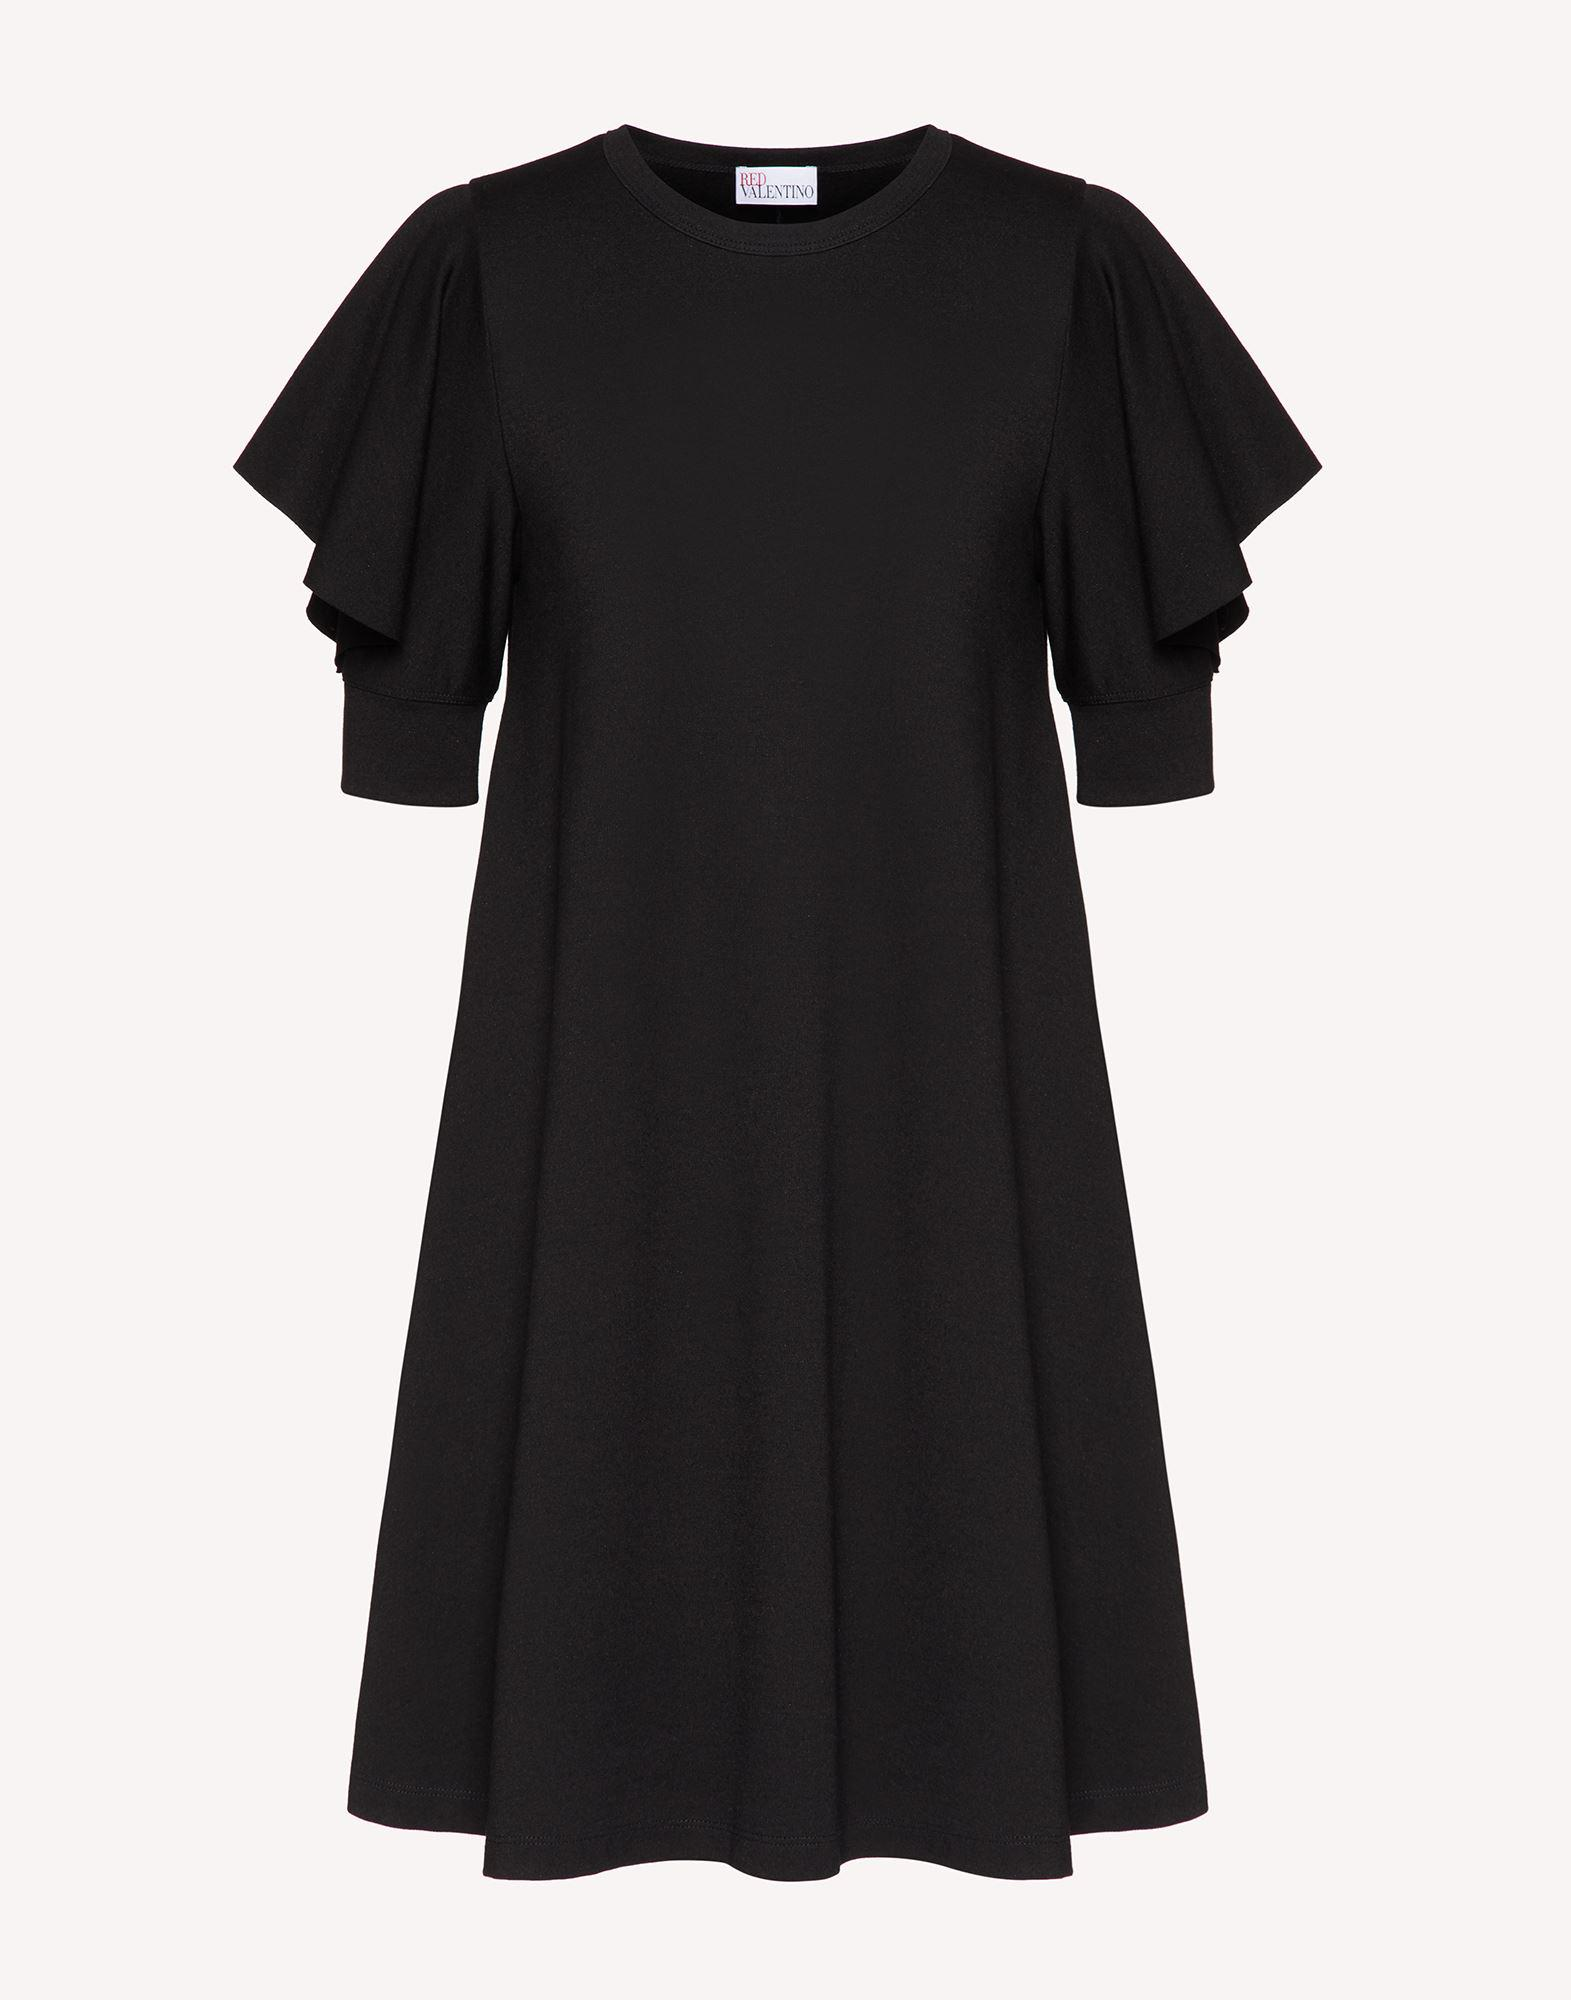 JERSEY DRESS WITH RUFFLE DETAIL 4